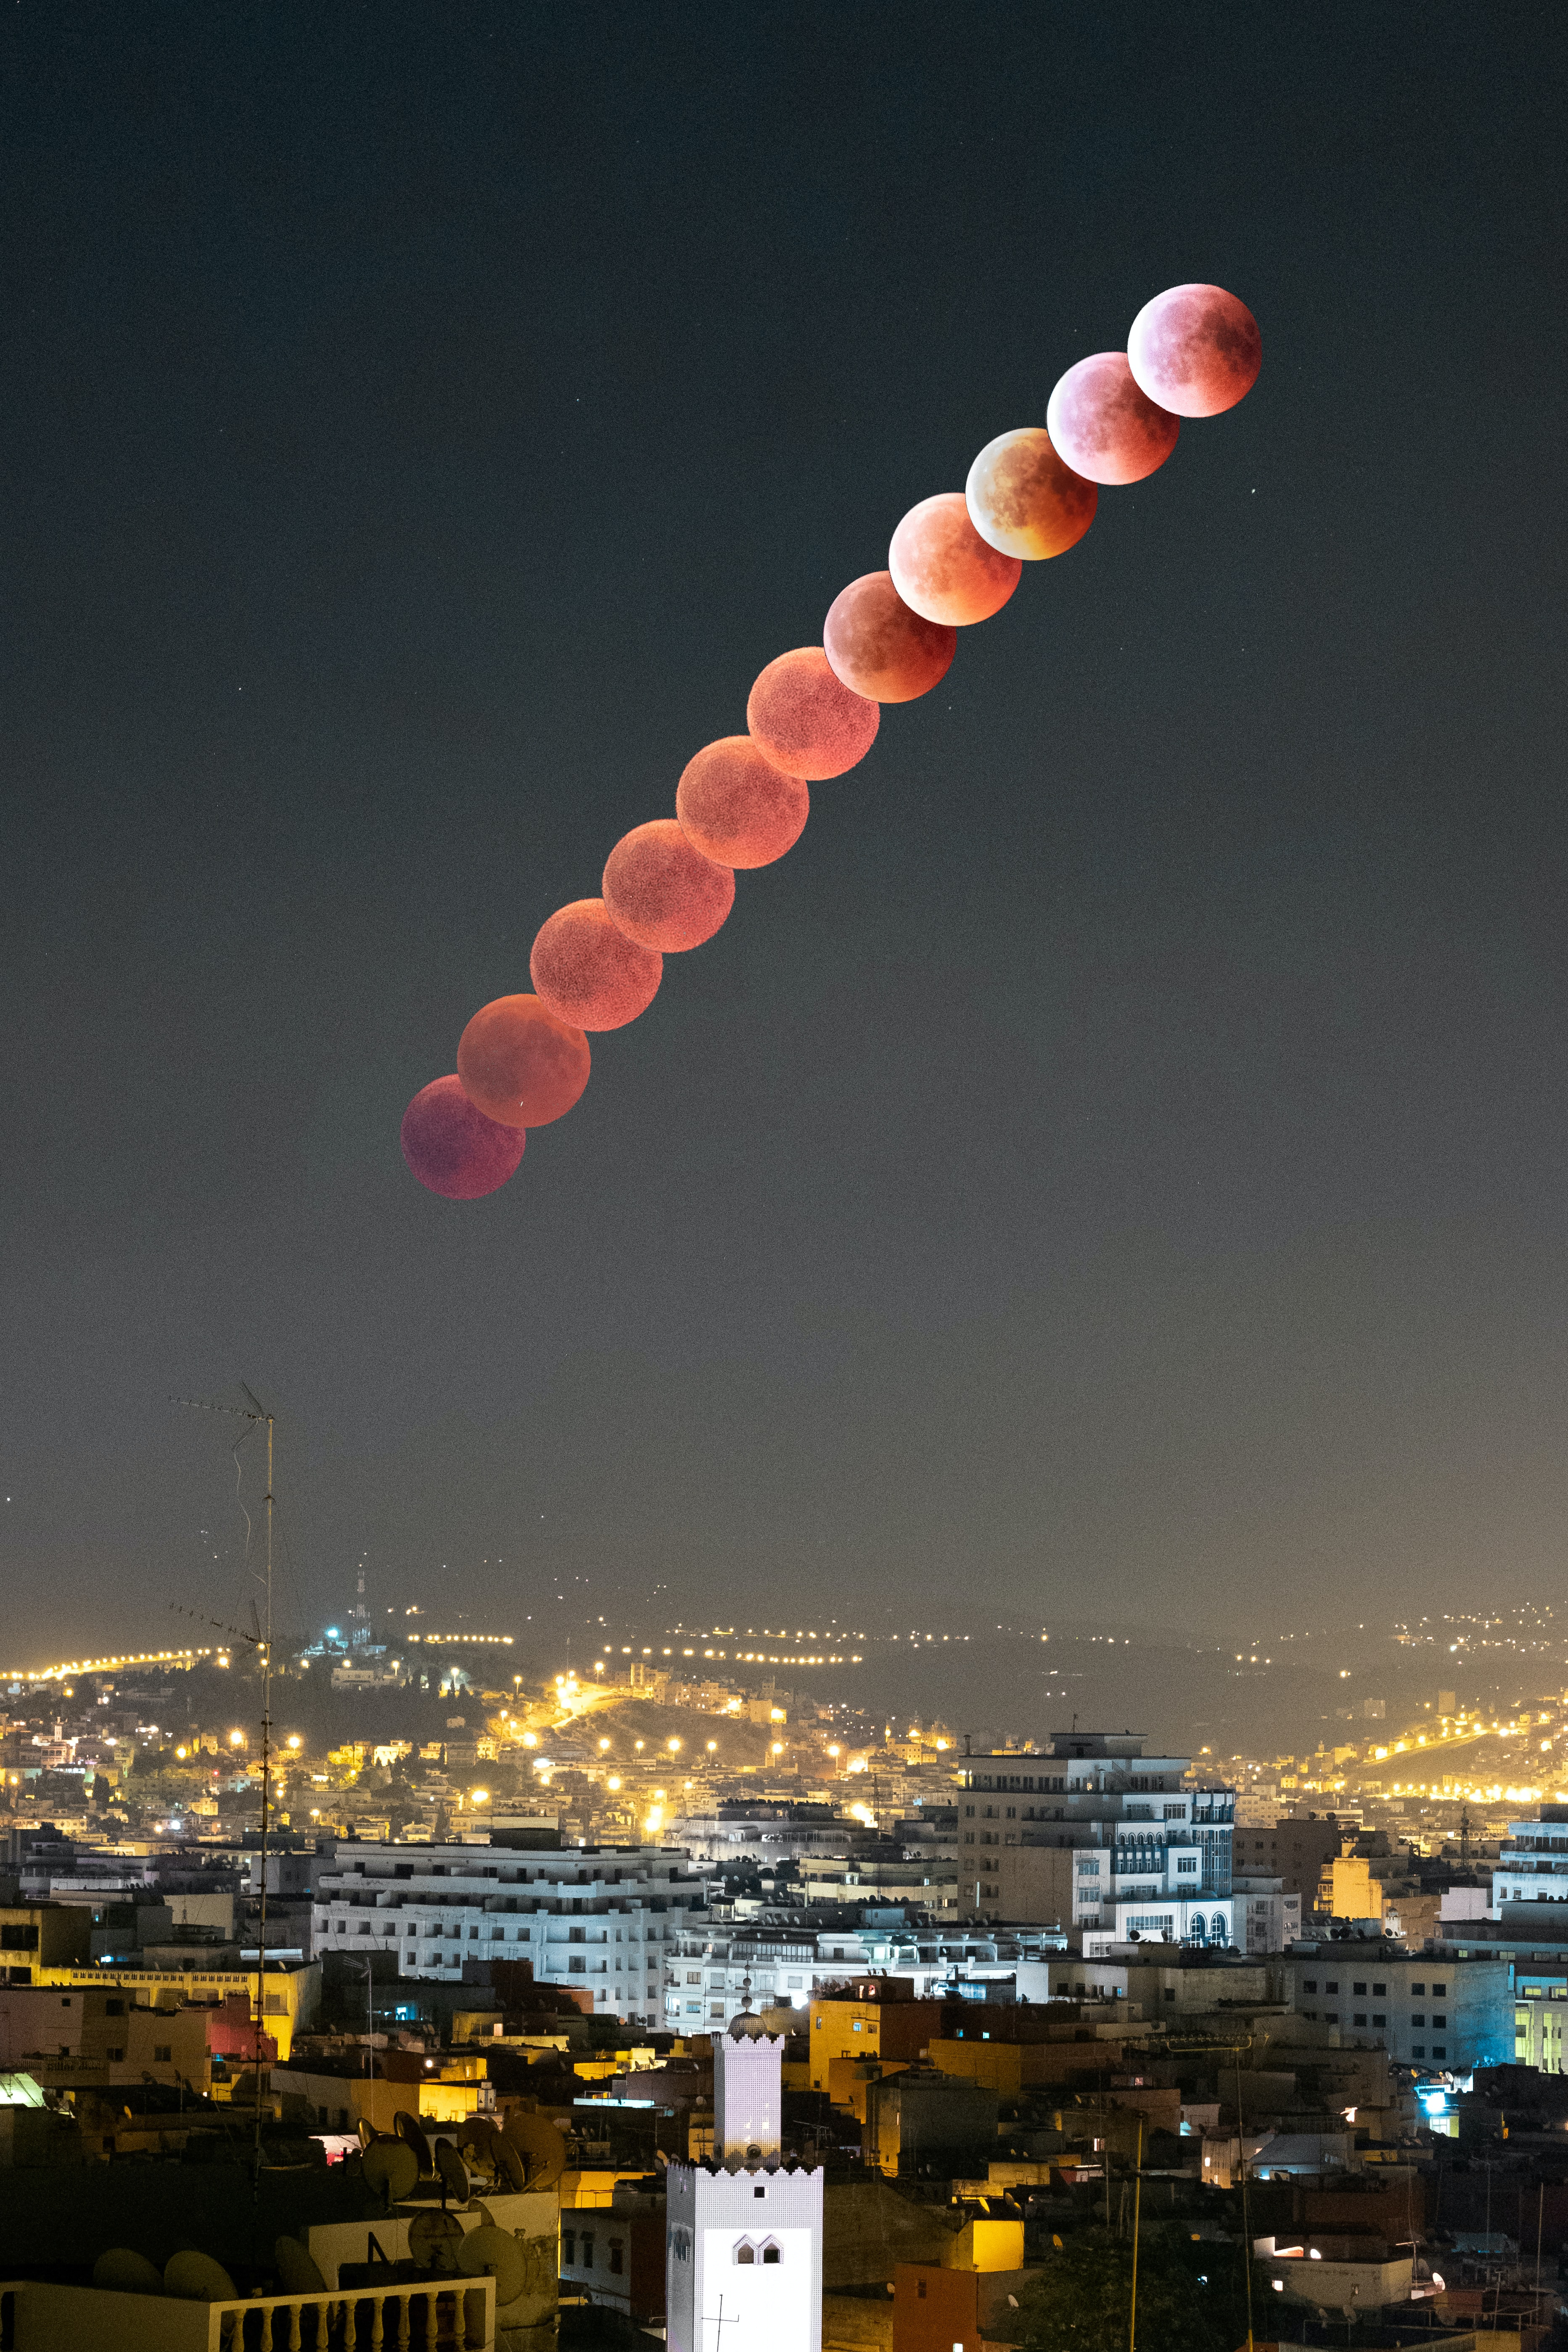 time lapse photography of total lunar eclipse